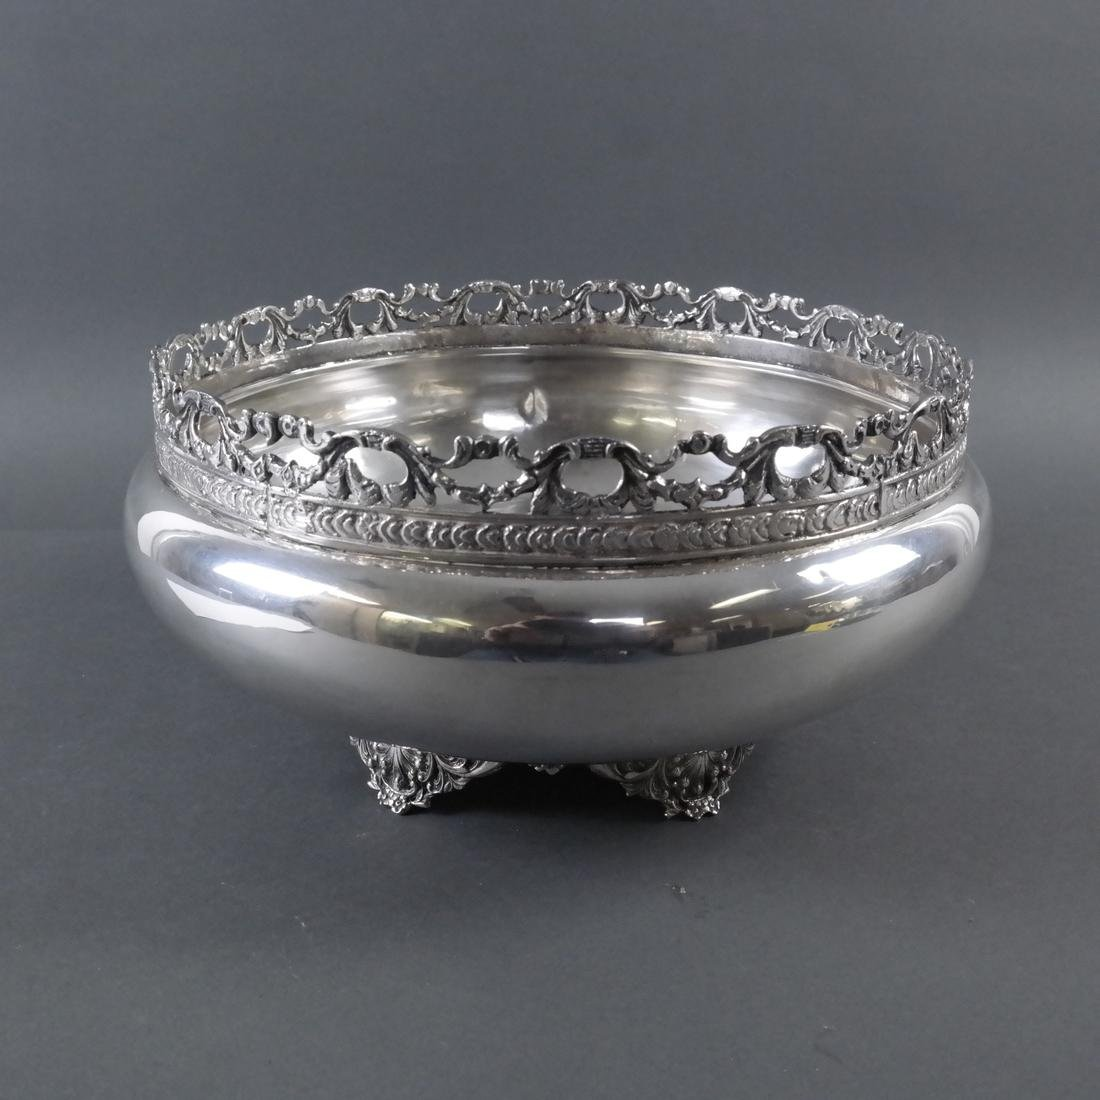 .900 Standard Silver Footed Bowl